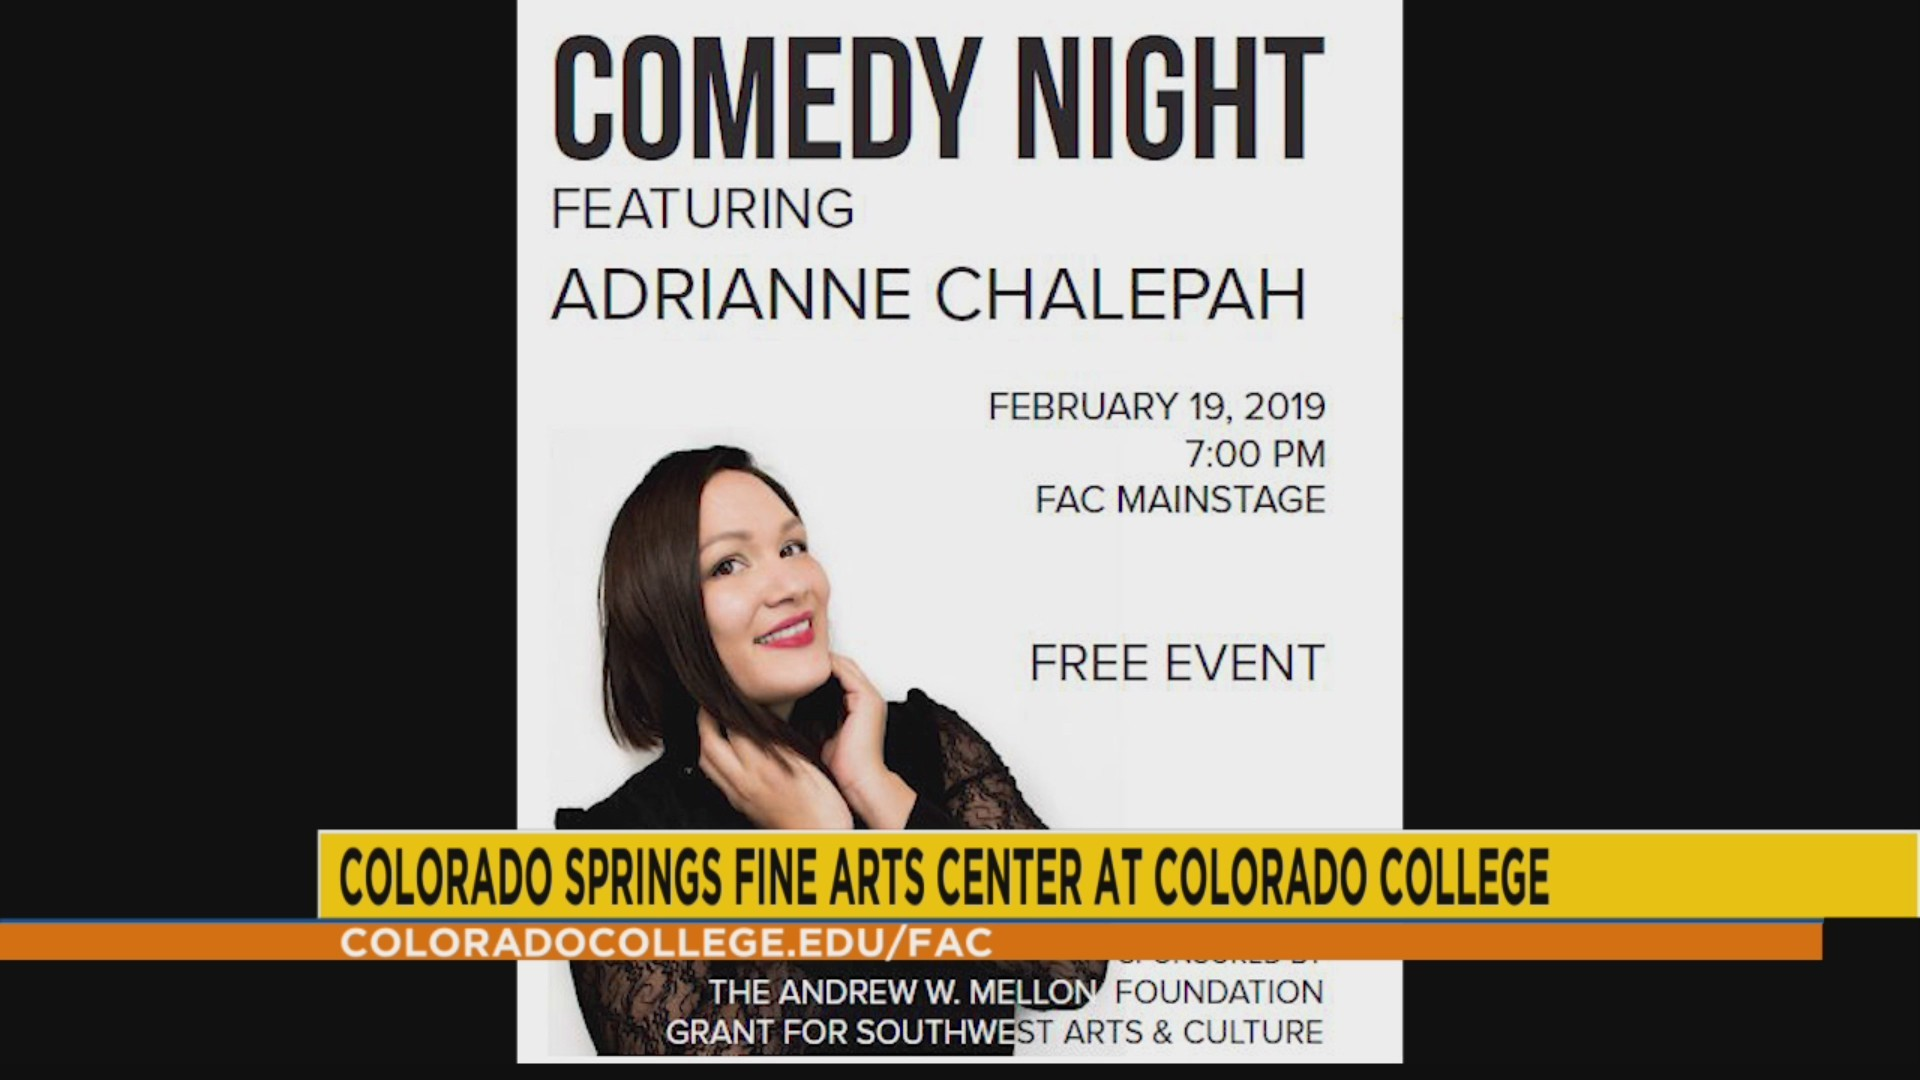 Comedy night at the FAC